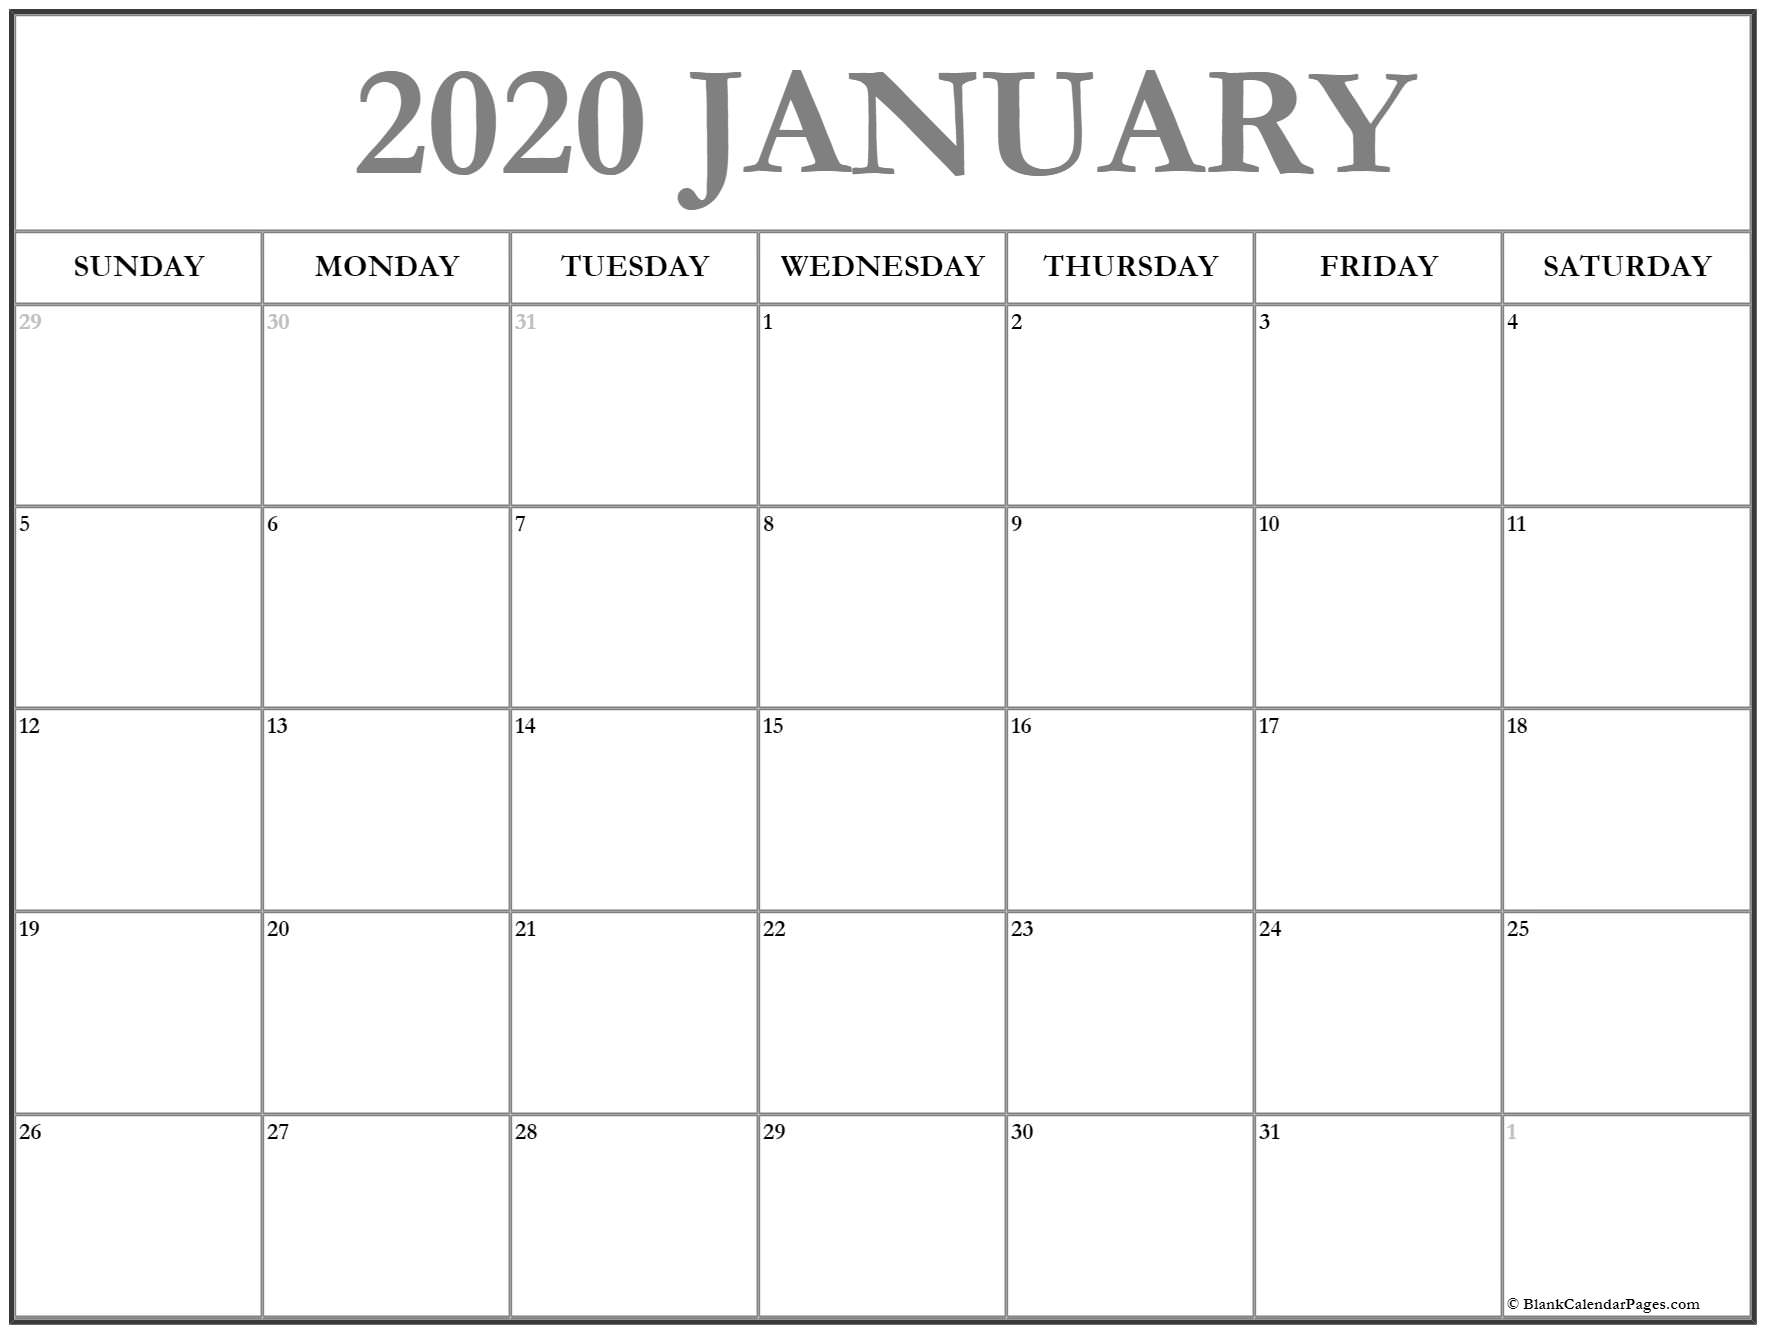 January 2020 Calendar | Free Printable Monthly Calendars with regard to 2020 Imom Free Calendars To Print